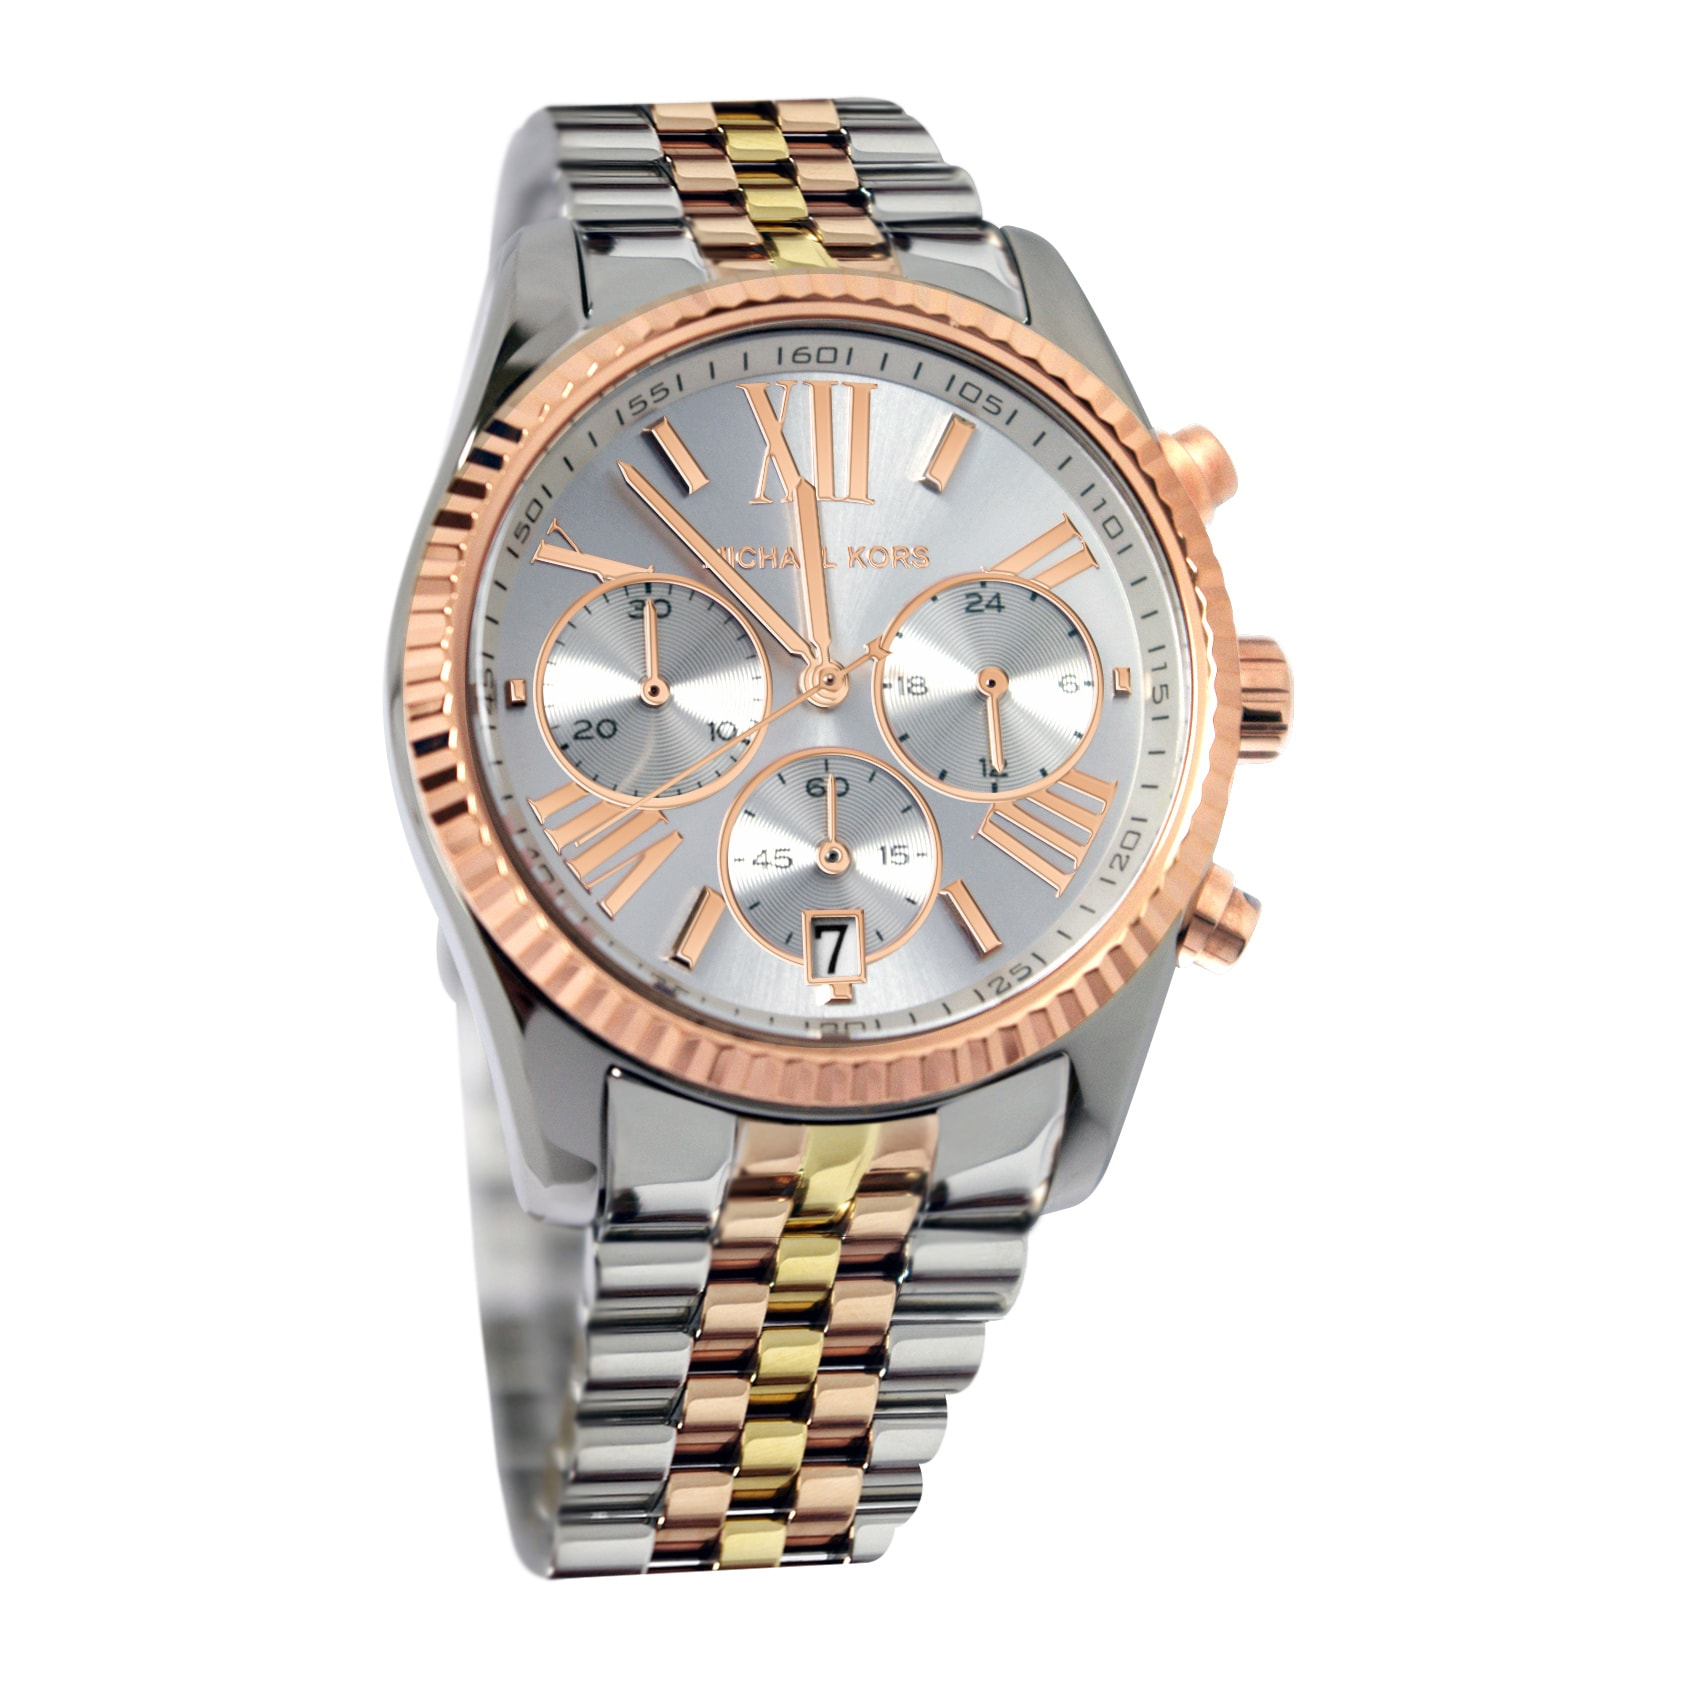 f19d90f8793a Shop Michael Kors Women s Lexington MK5735 Watch - WHITE GOLD - WHITE GOLD  - Free Shipping Today - Overstock - 8202470